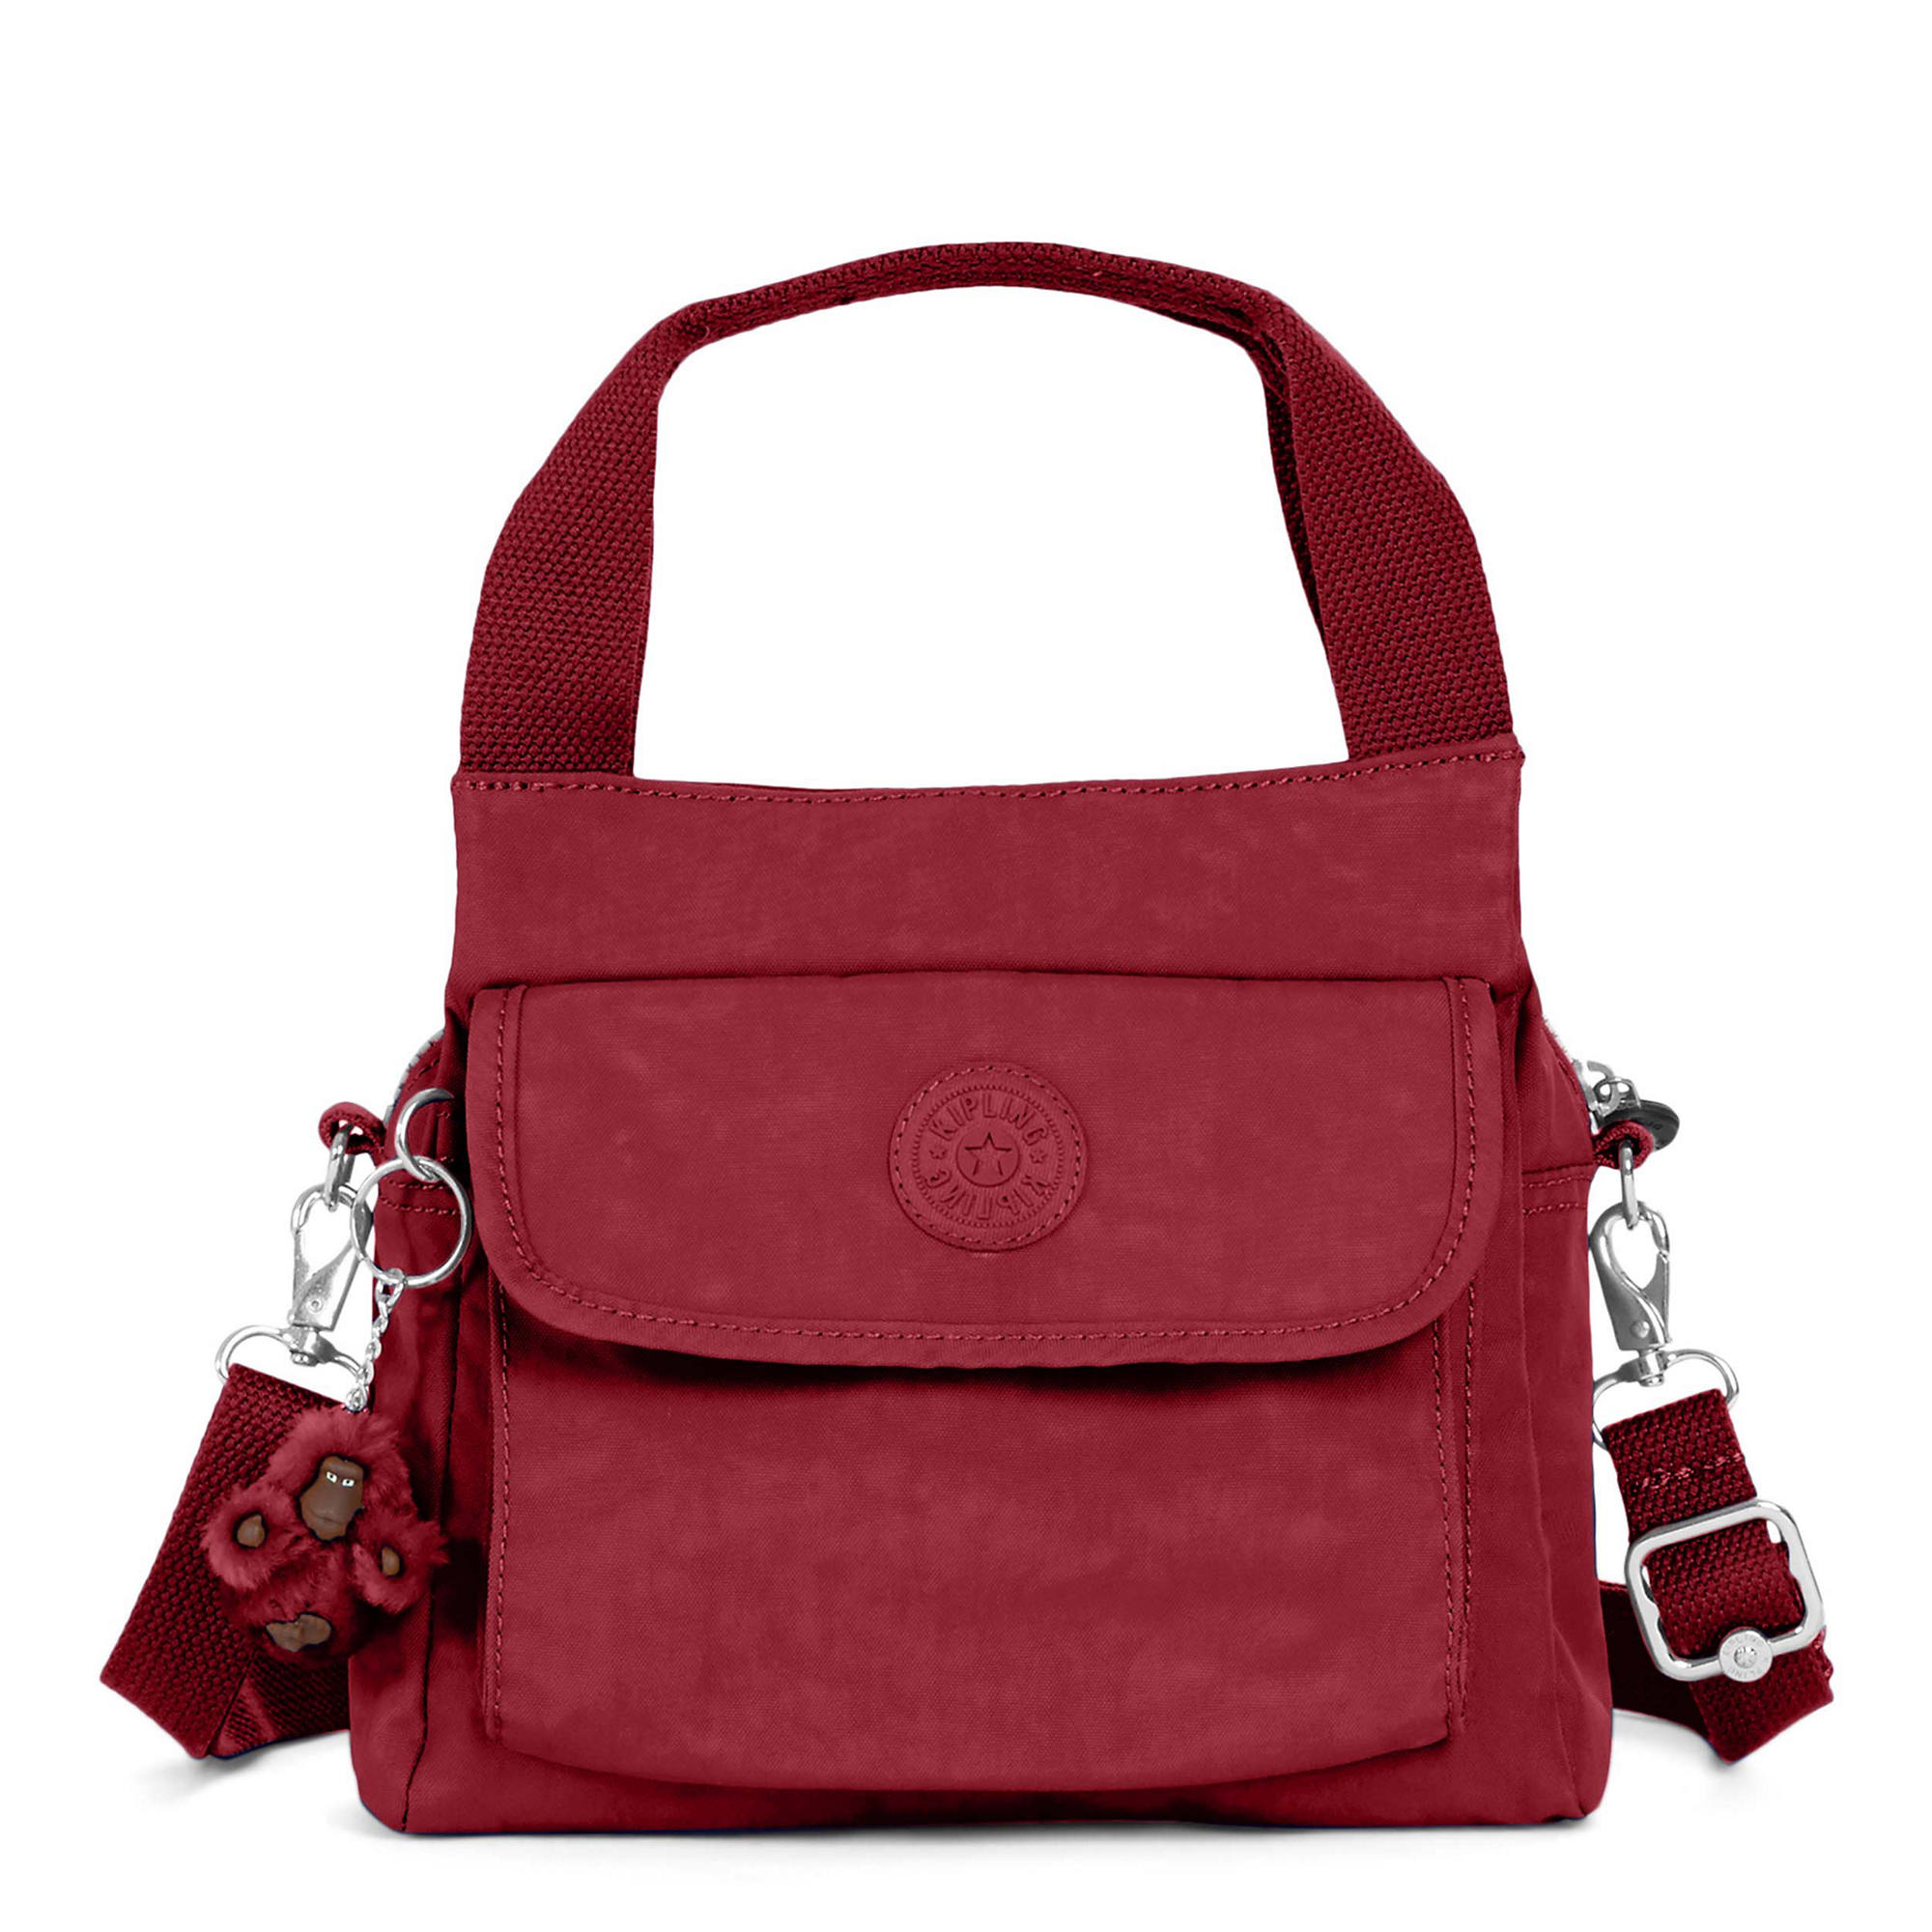 Felix Small Handbag Brick Red Large